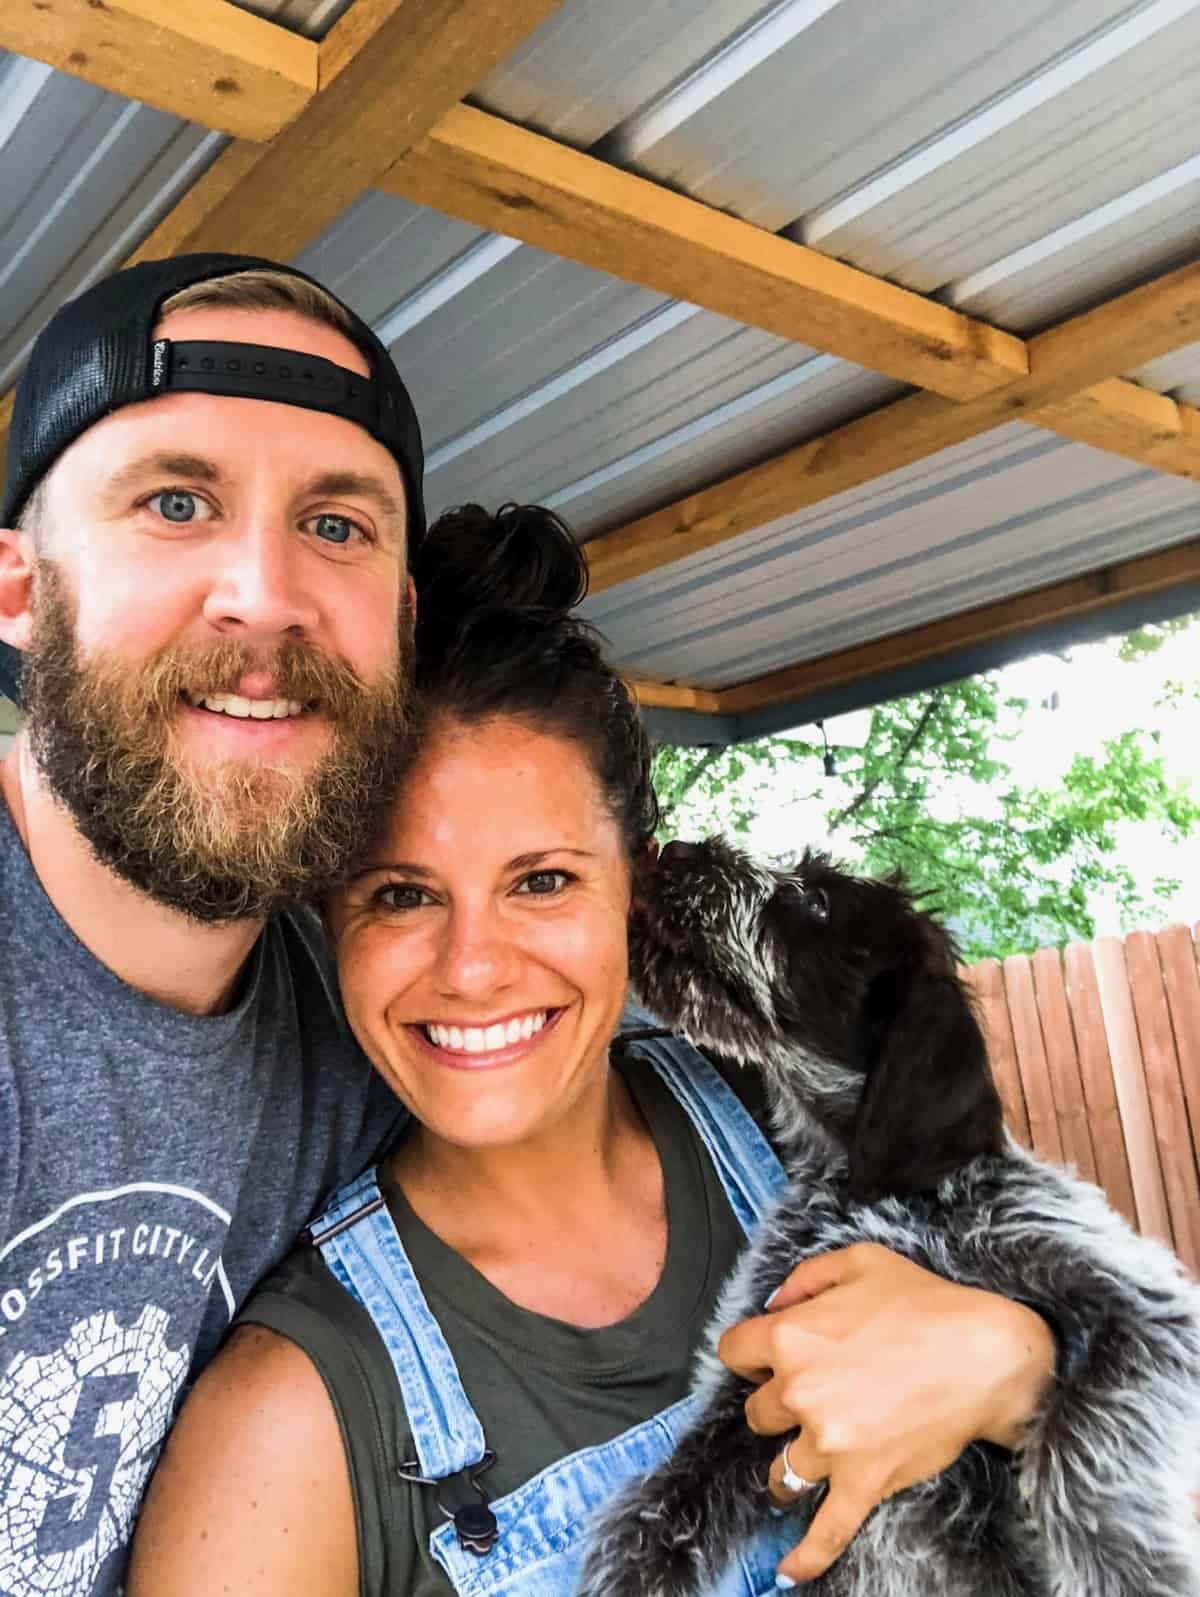 A girl, her fiancé, and their new puppy, who is licking her face, in a family photo outside